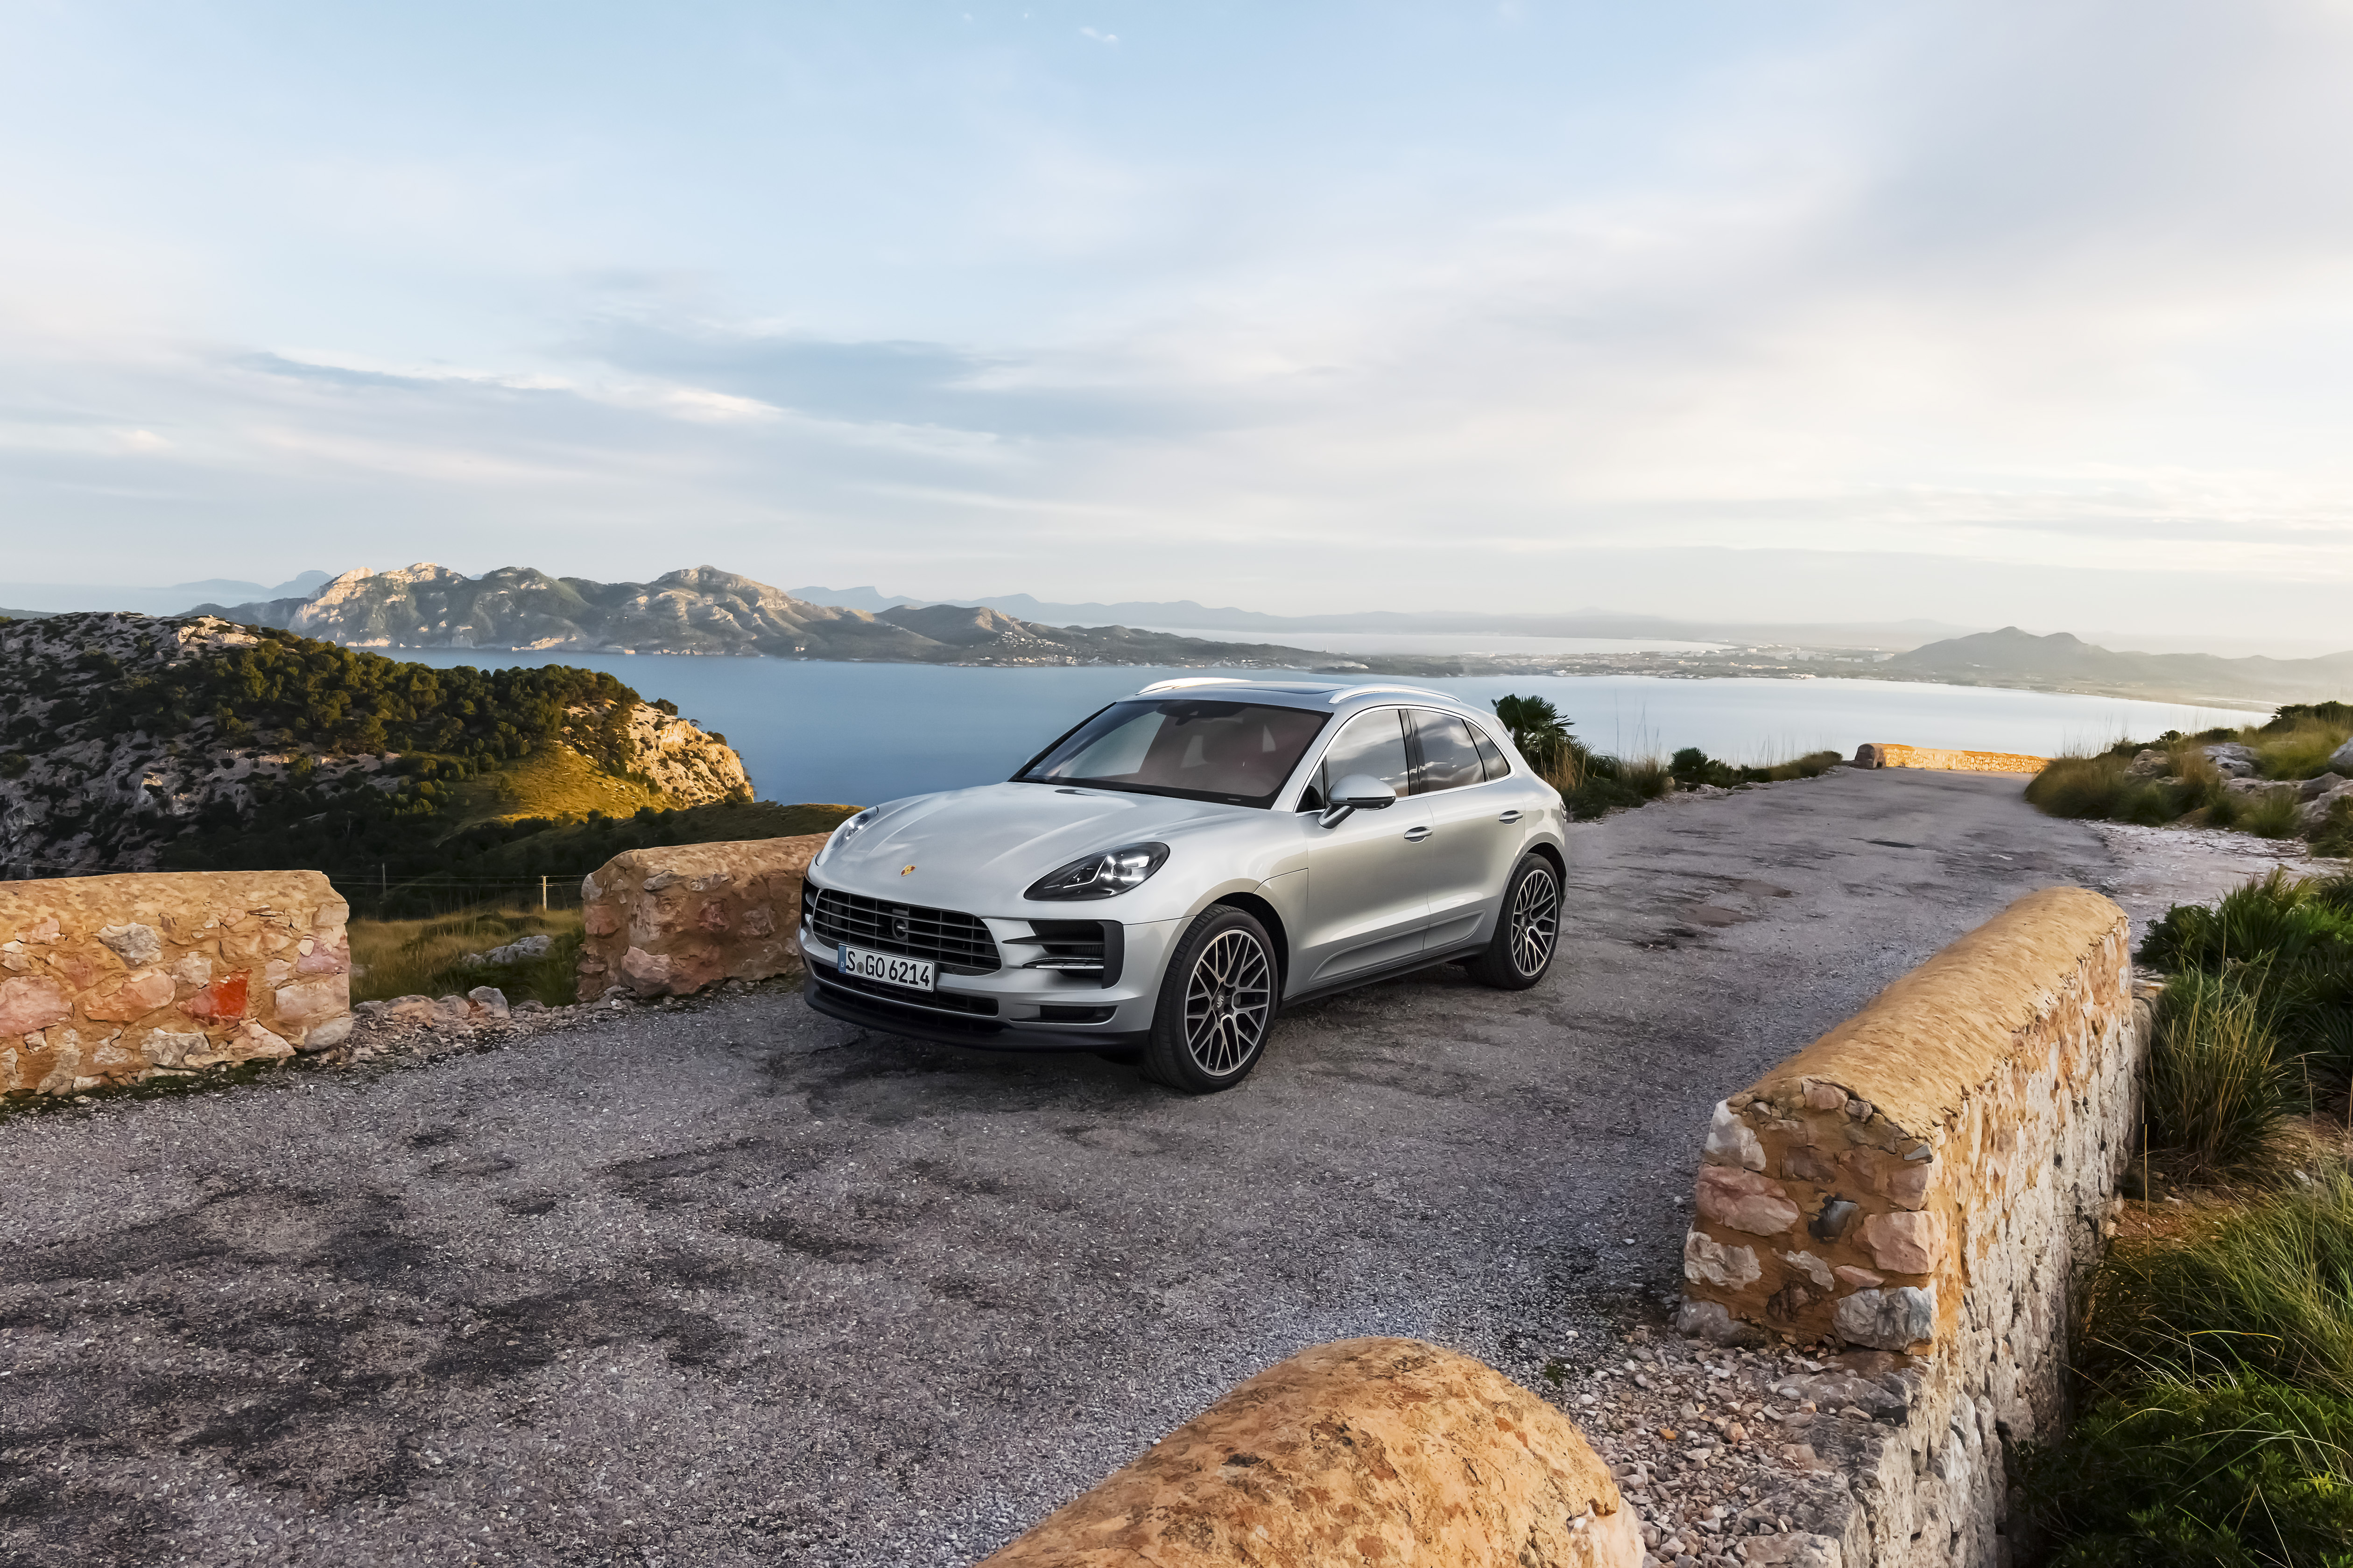 2021 Porsche Macan Redesign, Turbo, GTS, And Specs >> The 2021 Porsche Macan Will Only Be Offered With An All